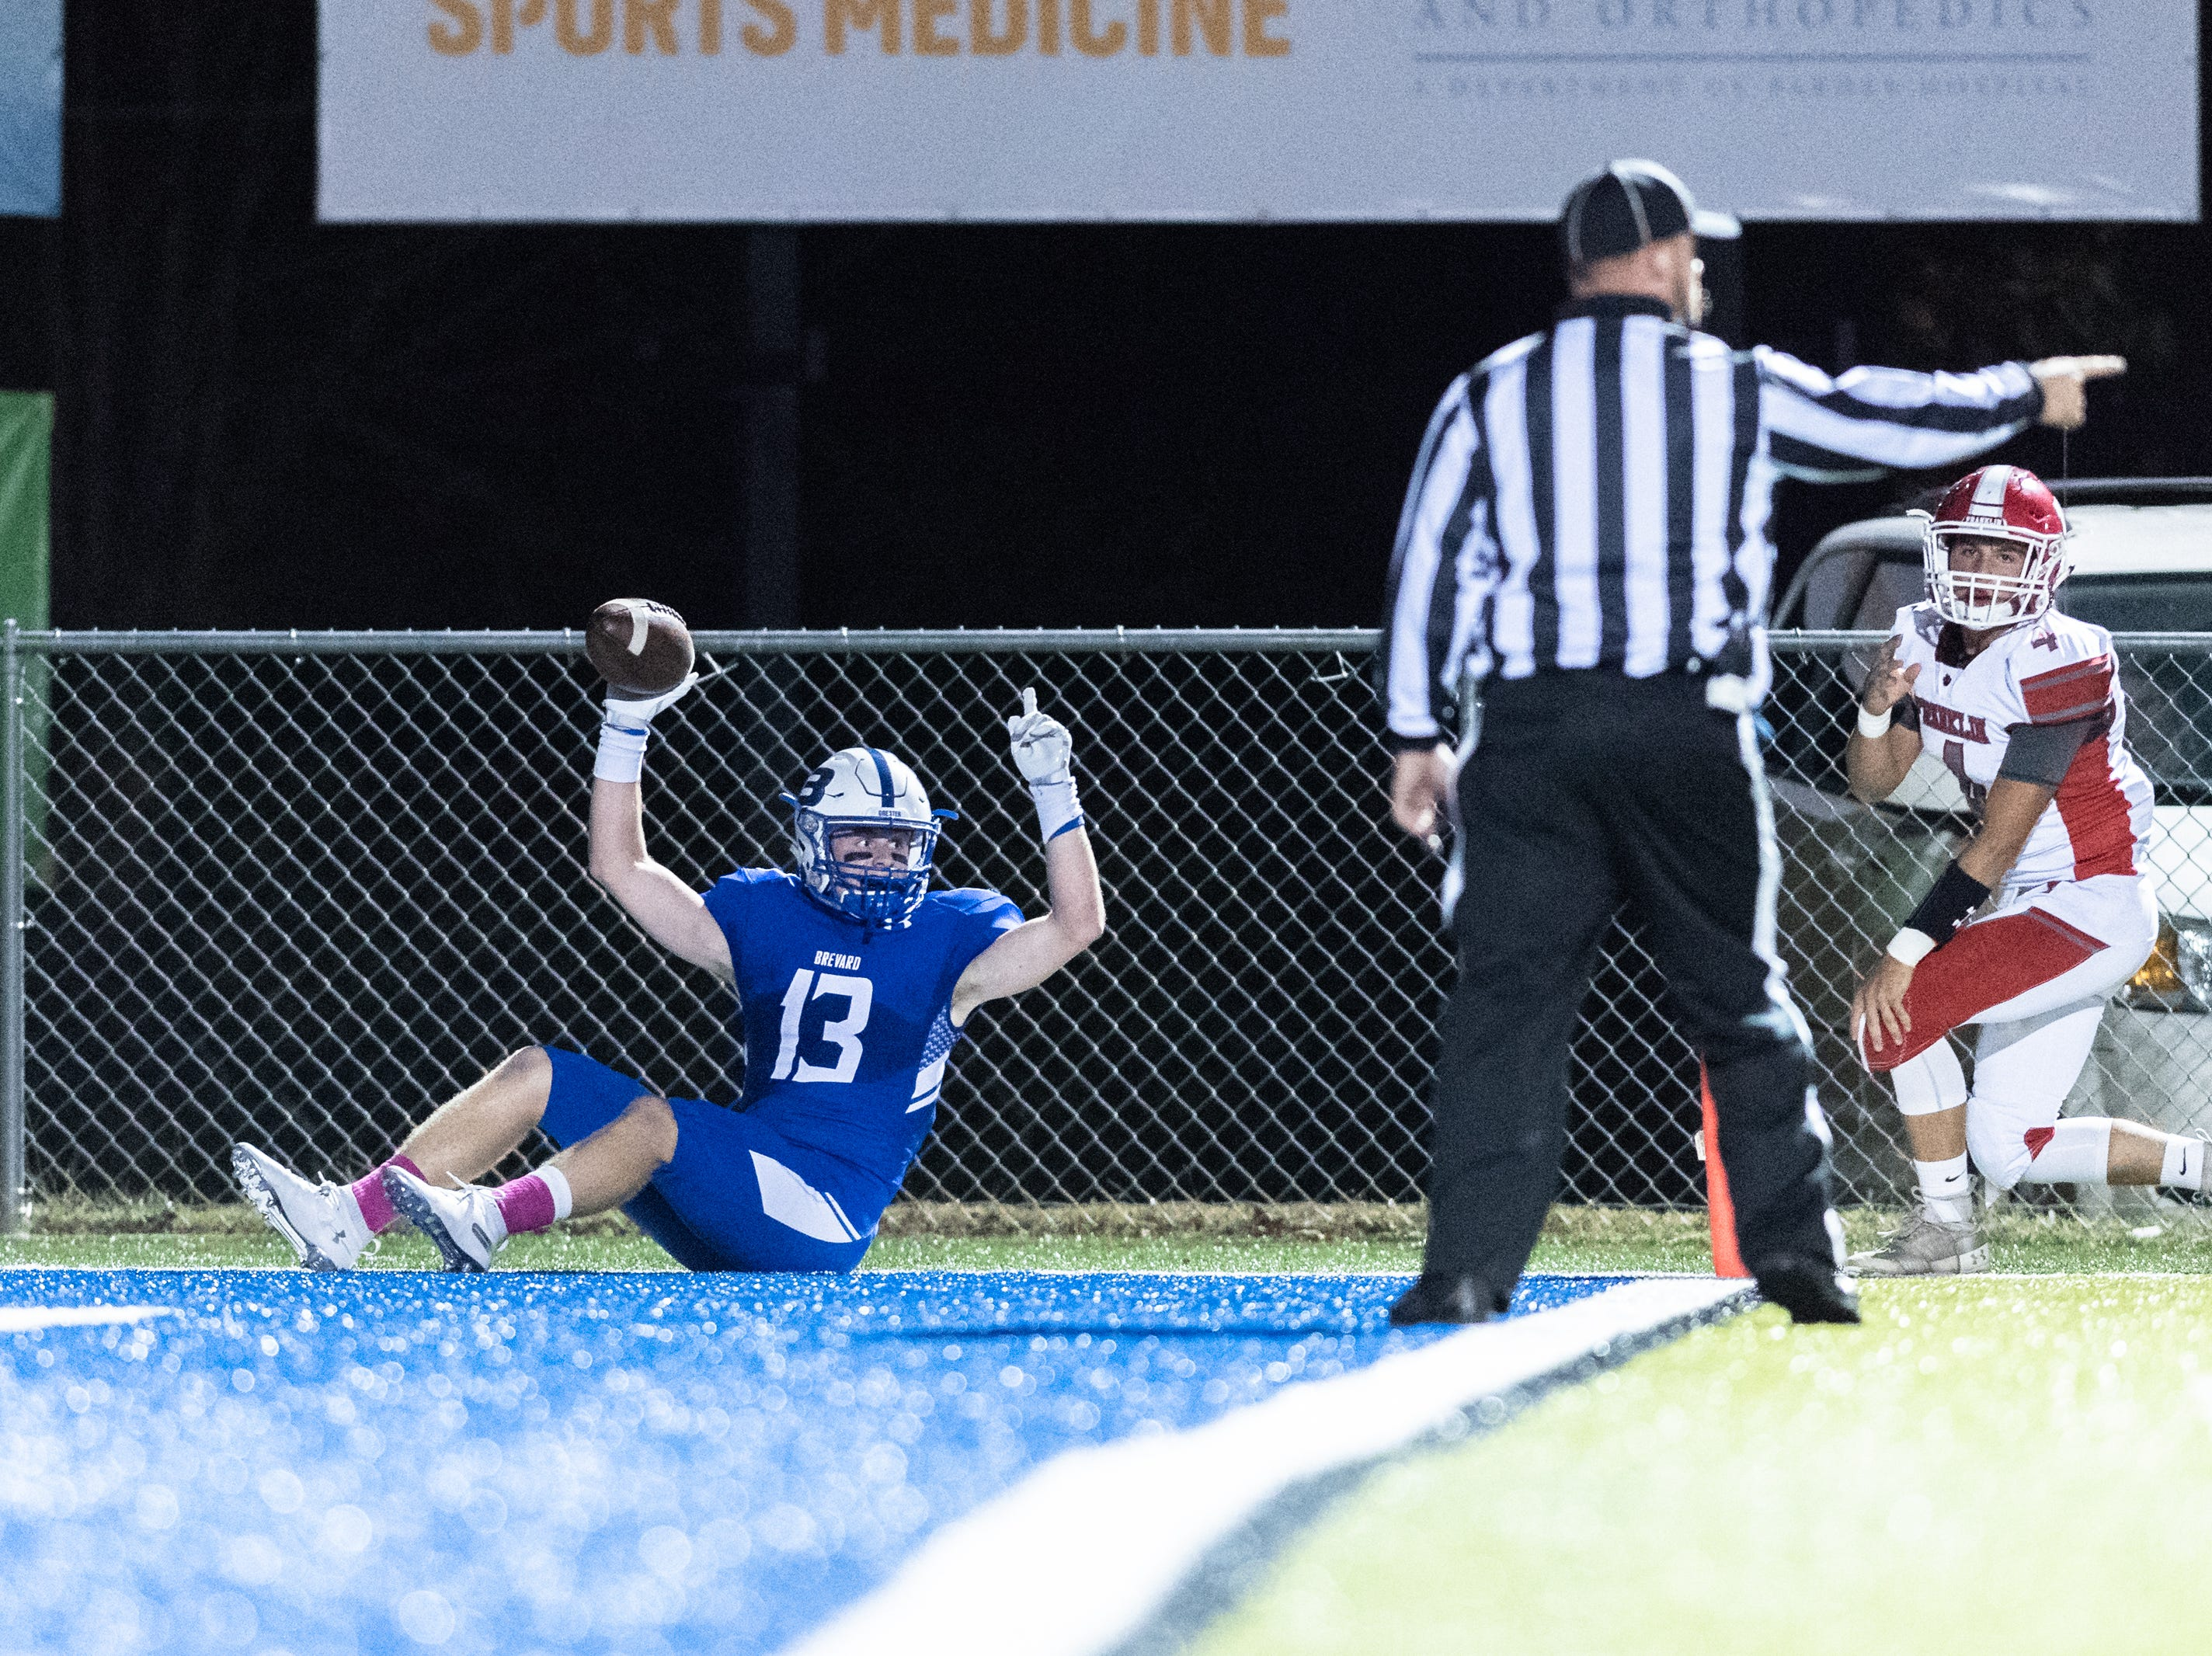 Brevard's Luke Ellenberger celebrates a touchdown during their Friday night football game against Franklin, Oct. 12, 2018.